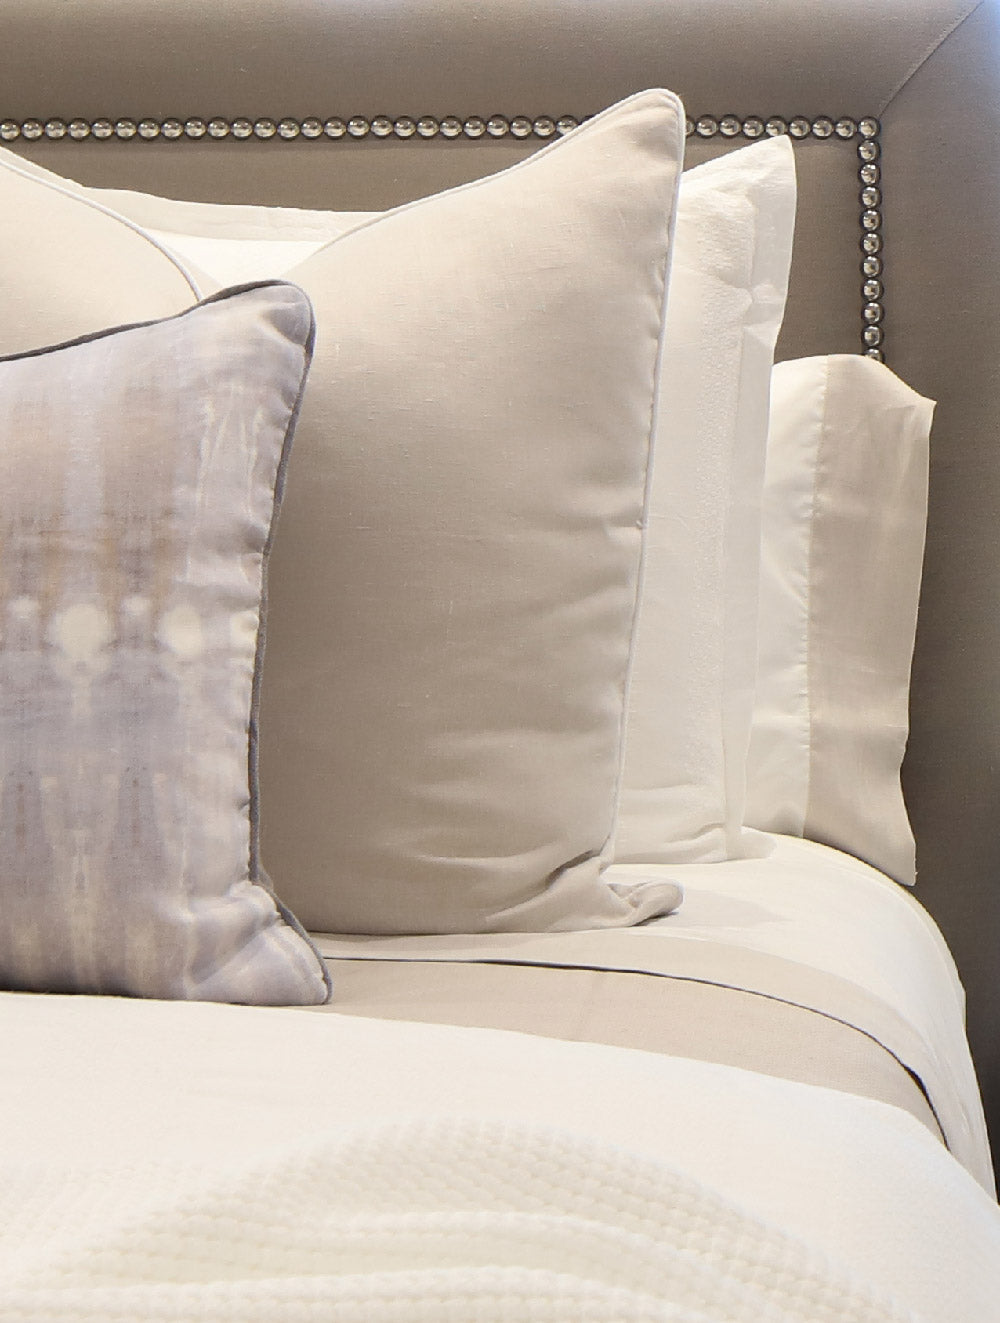 Decorative pillows combined with our Mandalay Cuff Sheet Set and Mandalay linen shams